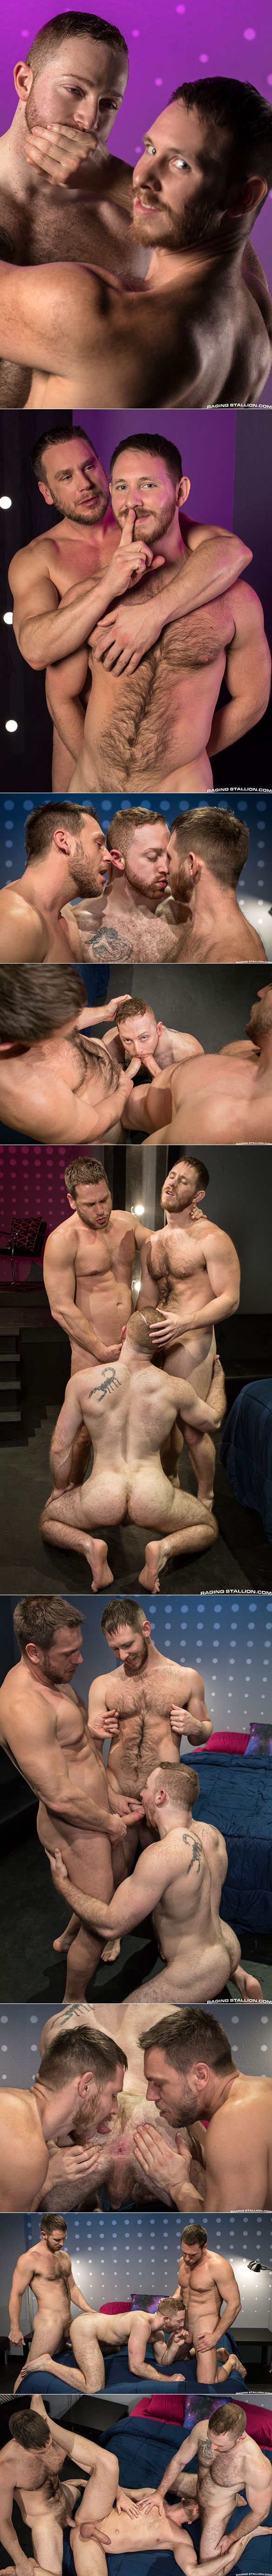 "Spencer Whitman, Hans Berlin and Sean Knight's hot threesome in ""Shut Up and Fuck Me!"""